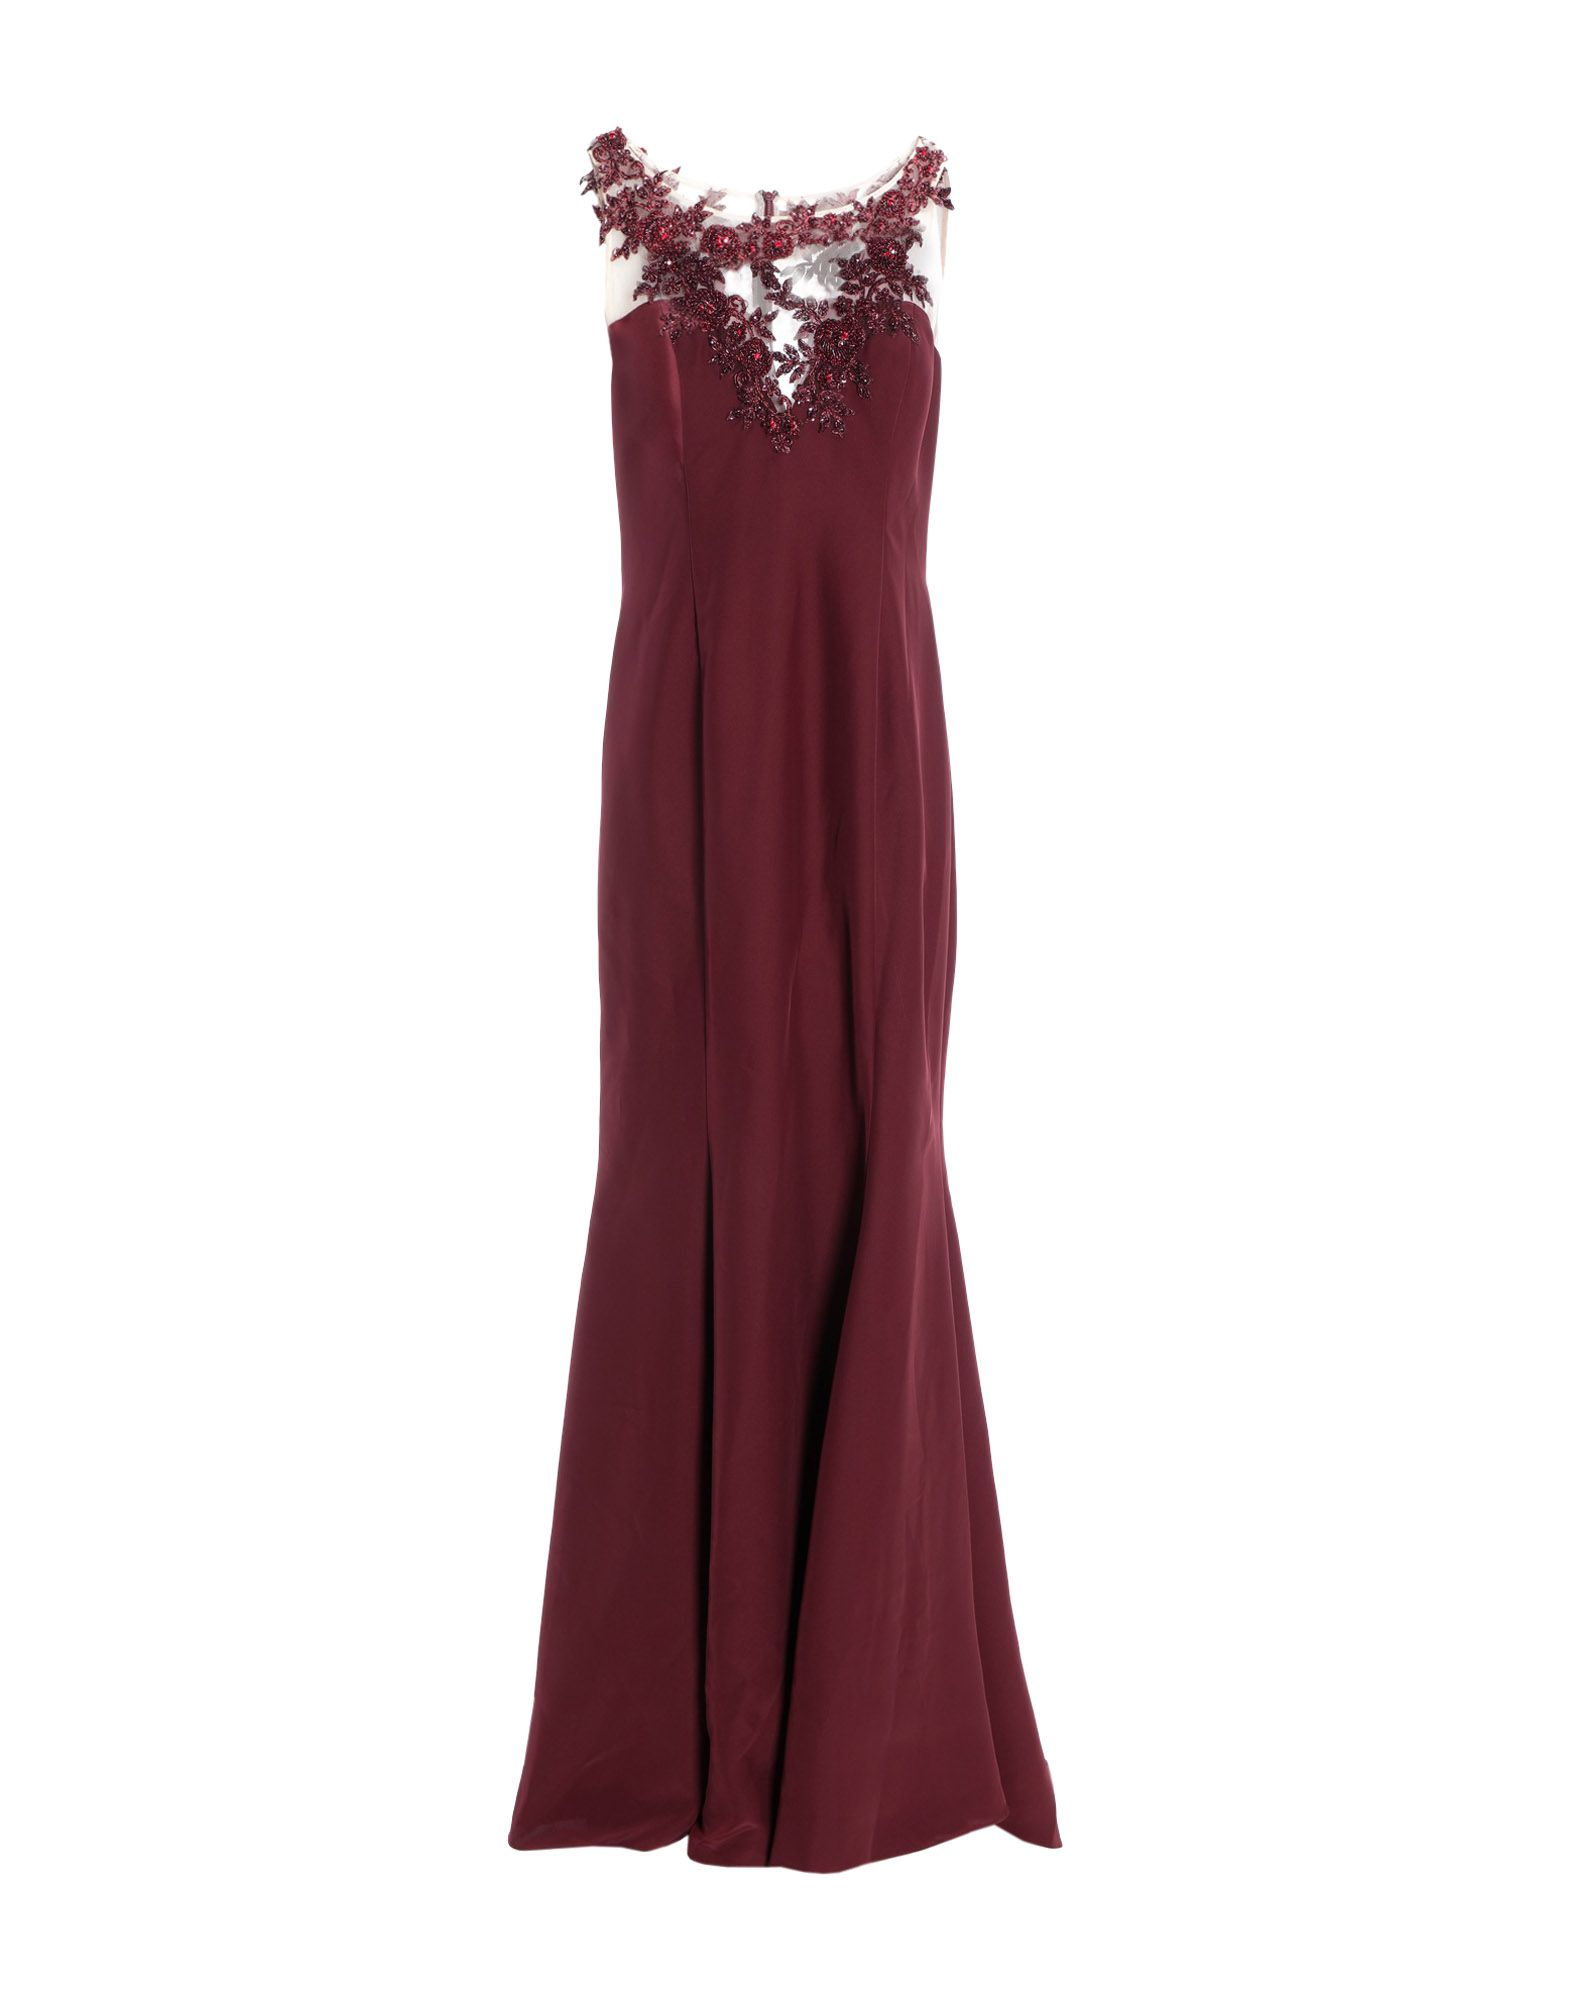 MIKAEL AGHAL Long Dresses in Maroon